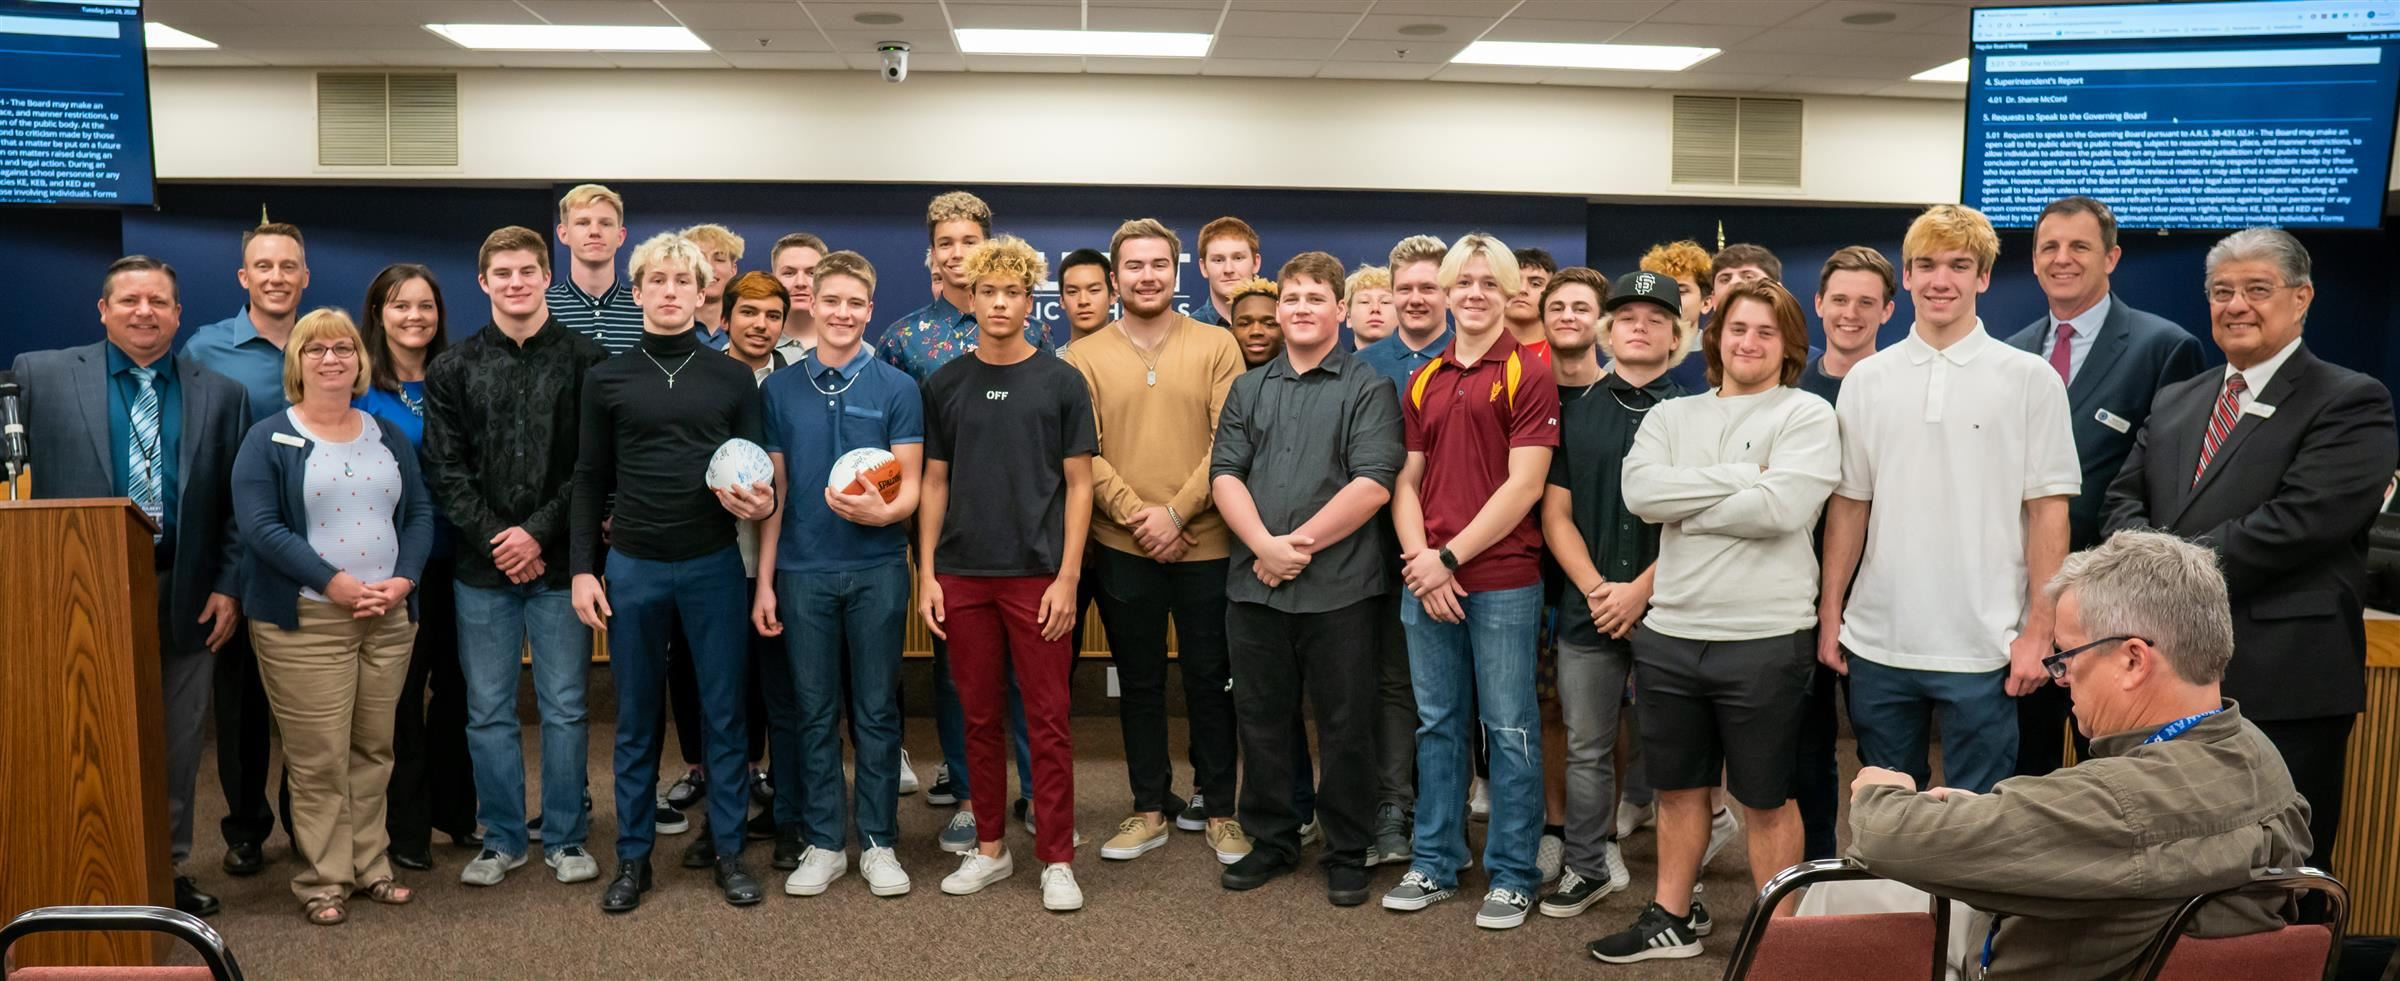 Mesquite High Football team were recognized as 4A State Football Champions.